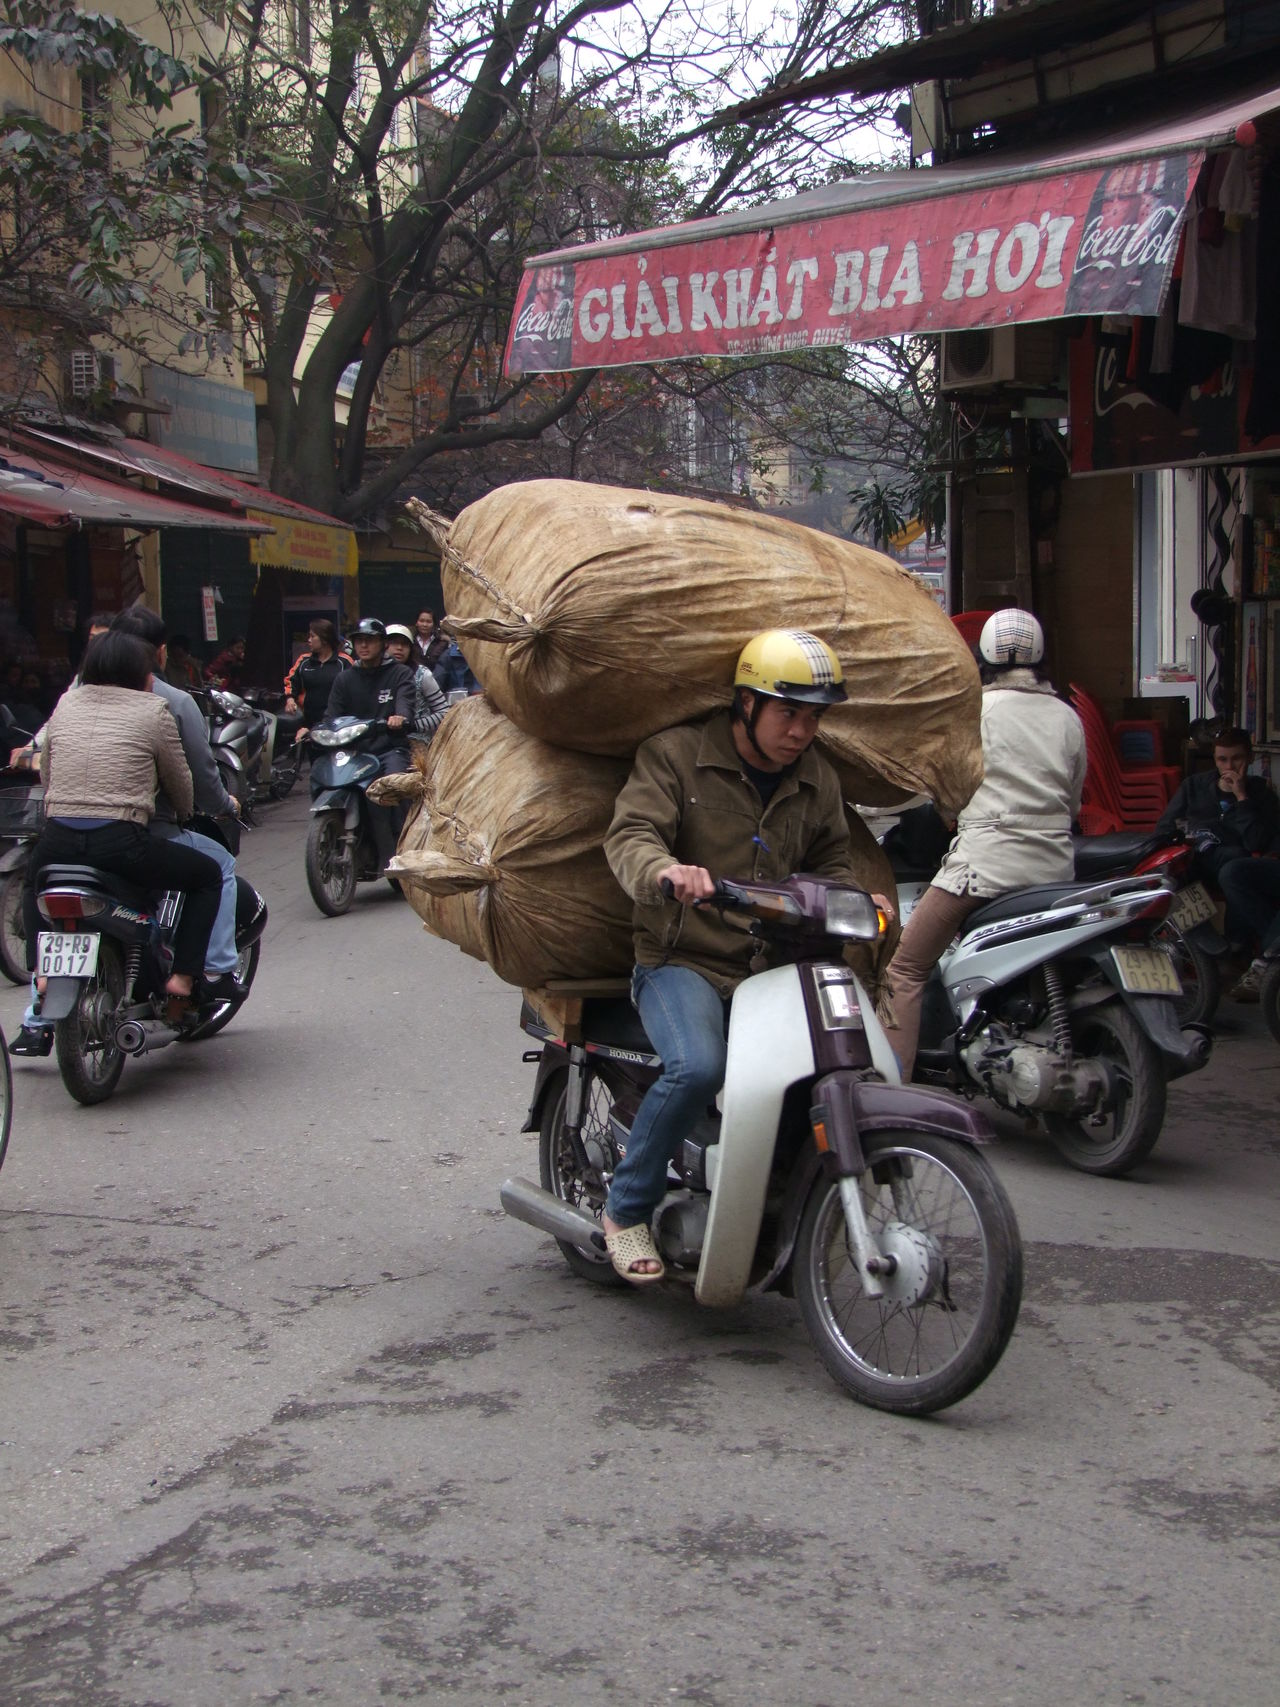 Overladen Scooter! City City Life Composition Culture Dangerous Day Full Frame Full Length Hanoi Incidental People Laden Land Vehicle Lifestyles Mode Of Transport Motorcycle On The Move Outdoor Photography Rider Riding Scooter Street Transportation Vietnam Young Man